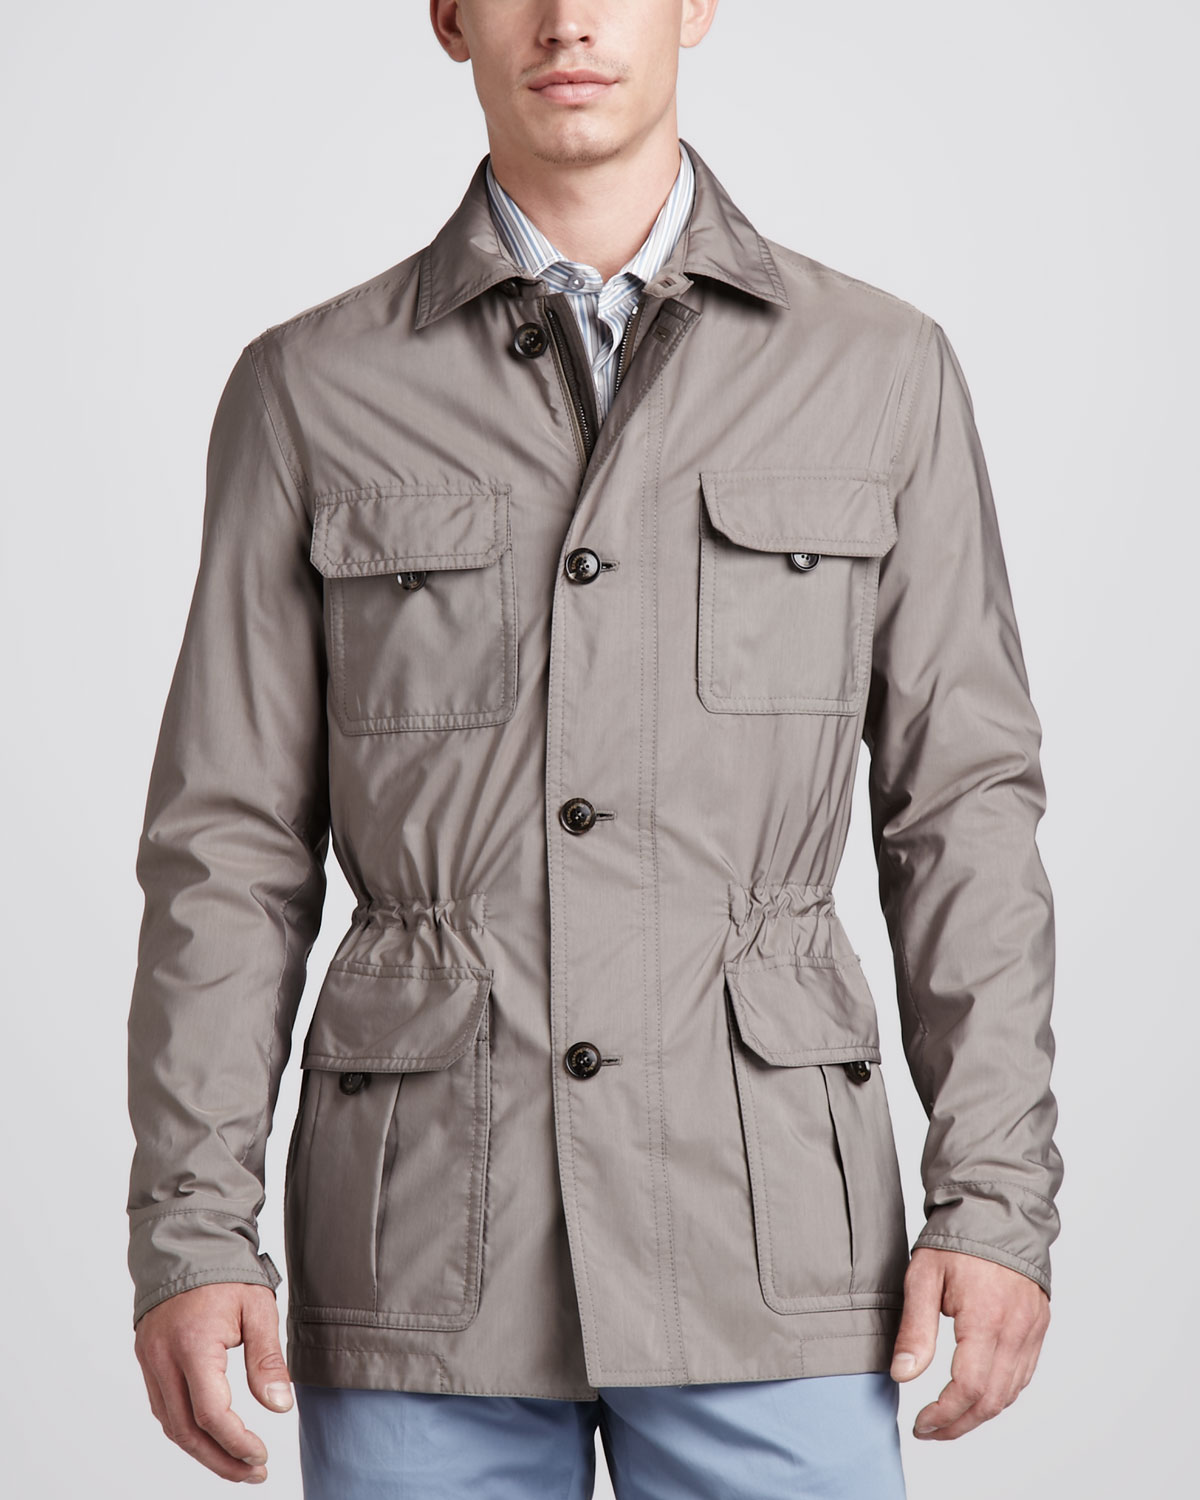 Lyst Ermenegildo Zegna Safari Jacket In Brown For Men